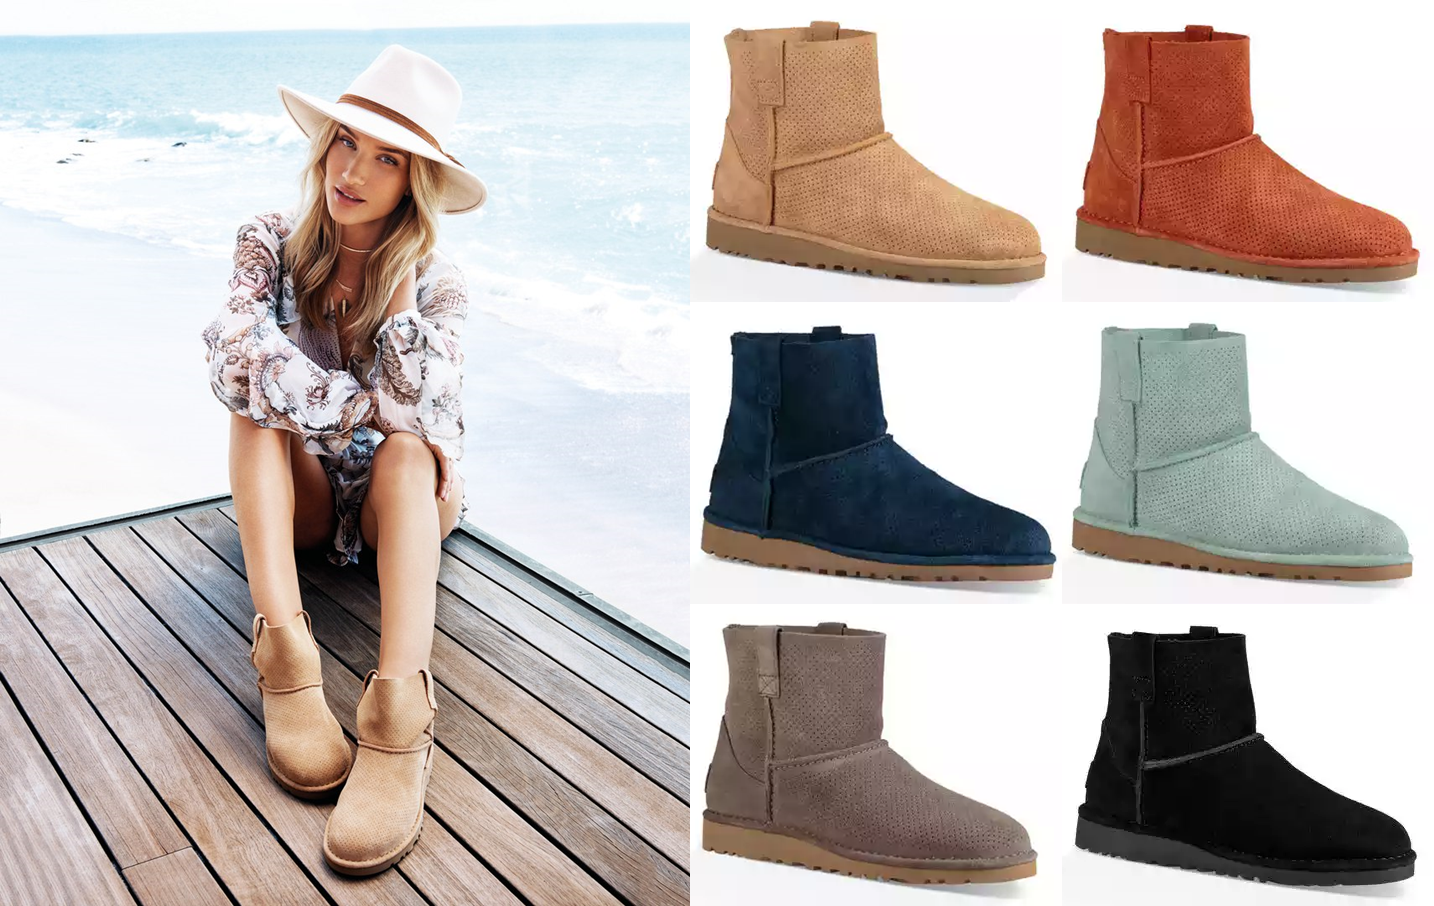 UGG offers their Classic Unlined Mini Perf on sale for $59.99 (Reg. $120). Shipping is $8. Choose from 6 colors.